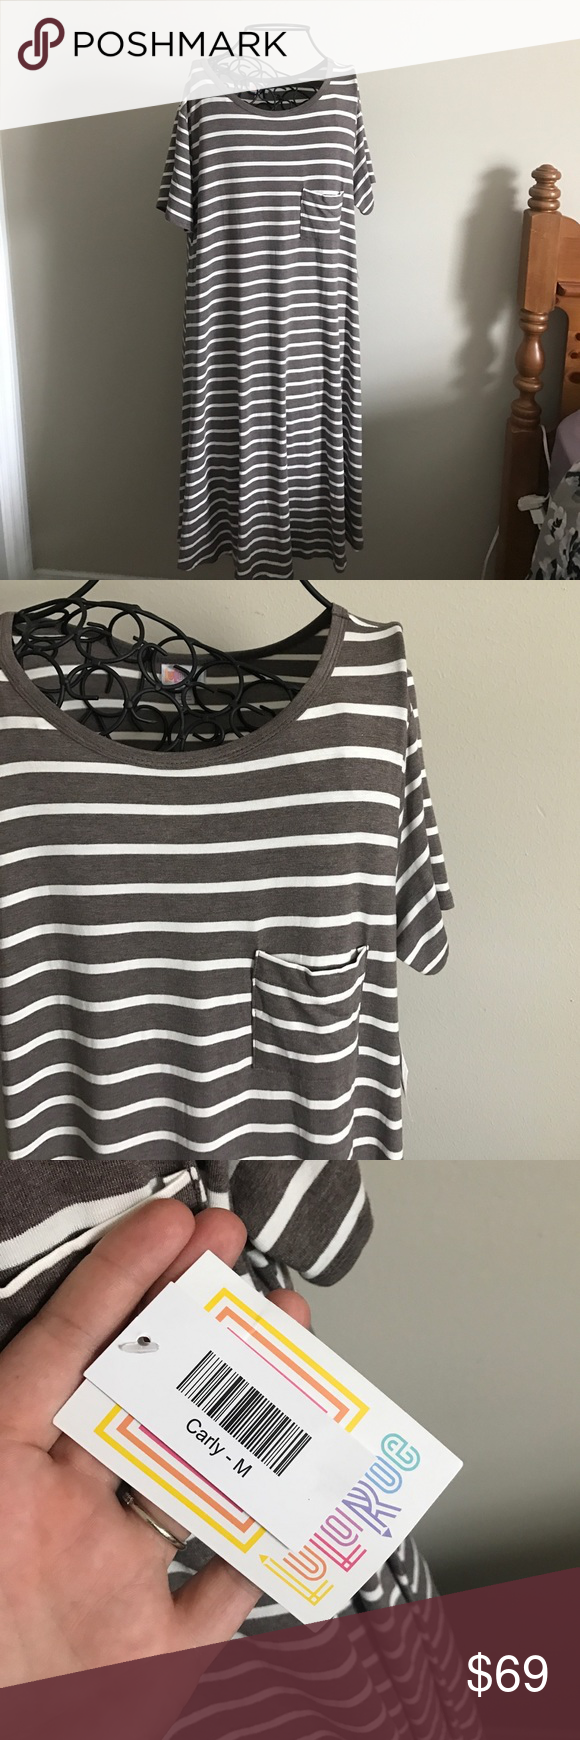 "Medium Carly Dress. New with tags. Super soft, stretchy material. Size medium. White and brownish gray striped. Super comfortable and versatile. 95% rayon, 5% spandex. ❌ No trades or off Poshmark transactions.   👌🏻Quick shipping.   💁🏻Offers welcome through ""Make an Offer"" feature.   👗👠 Bundle discount.   ❔ Feel free to ask any questions. LuLaRoe Dresses"